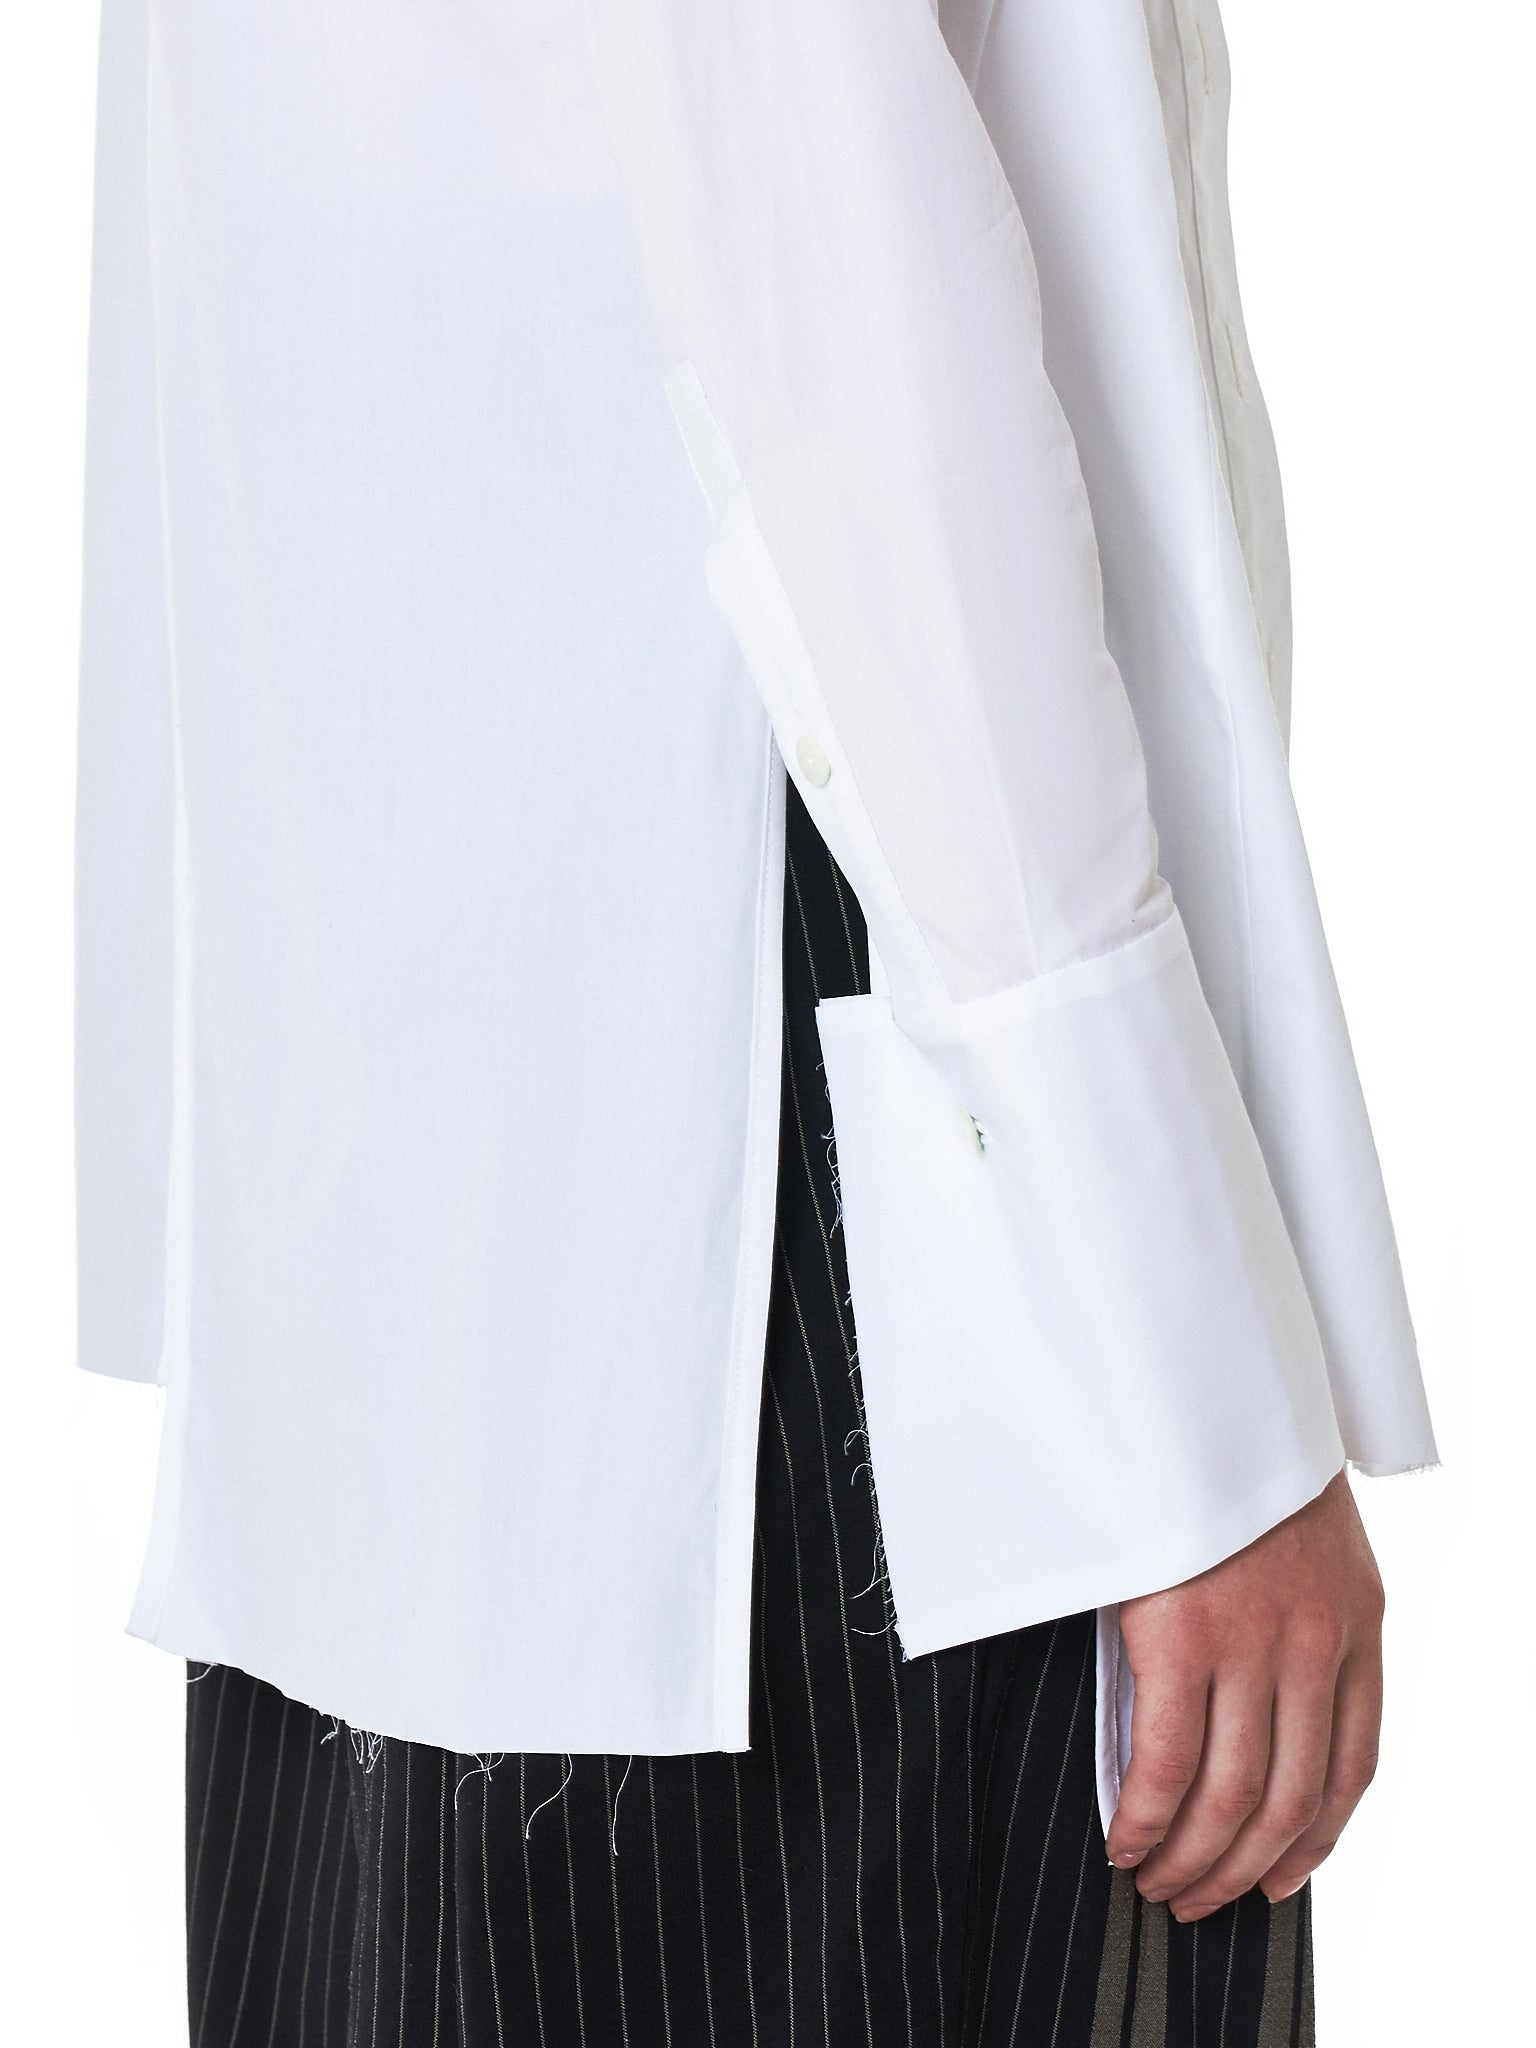 Asymmetric Stole Shirt (41845-011-1010)